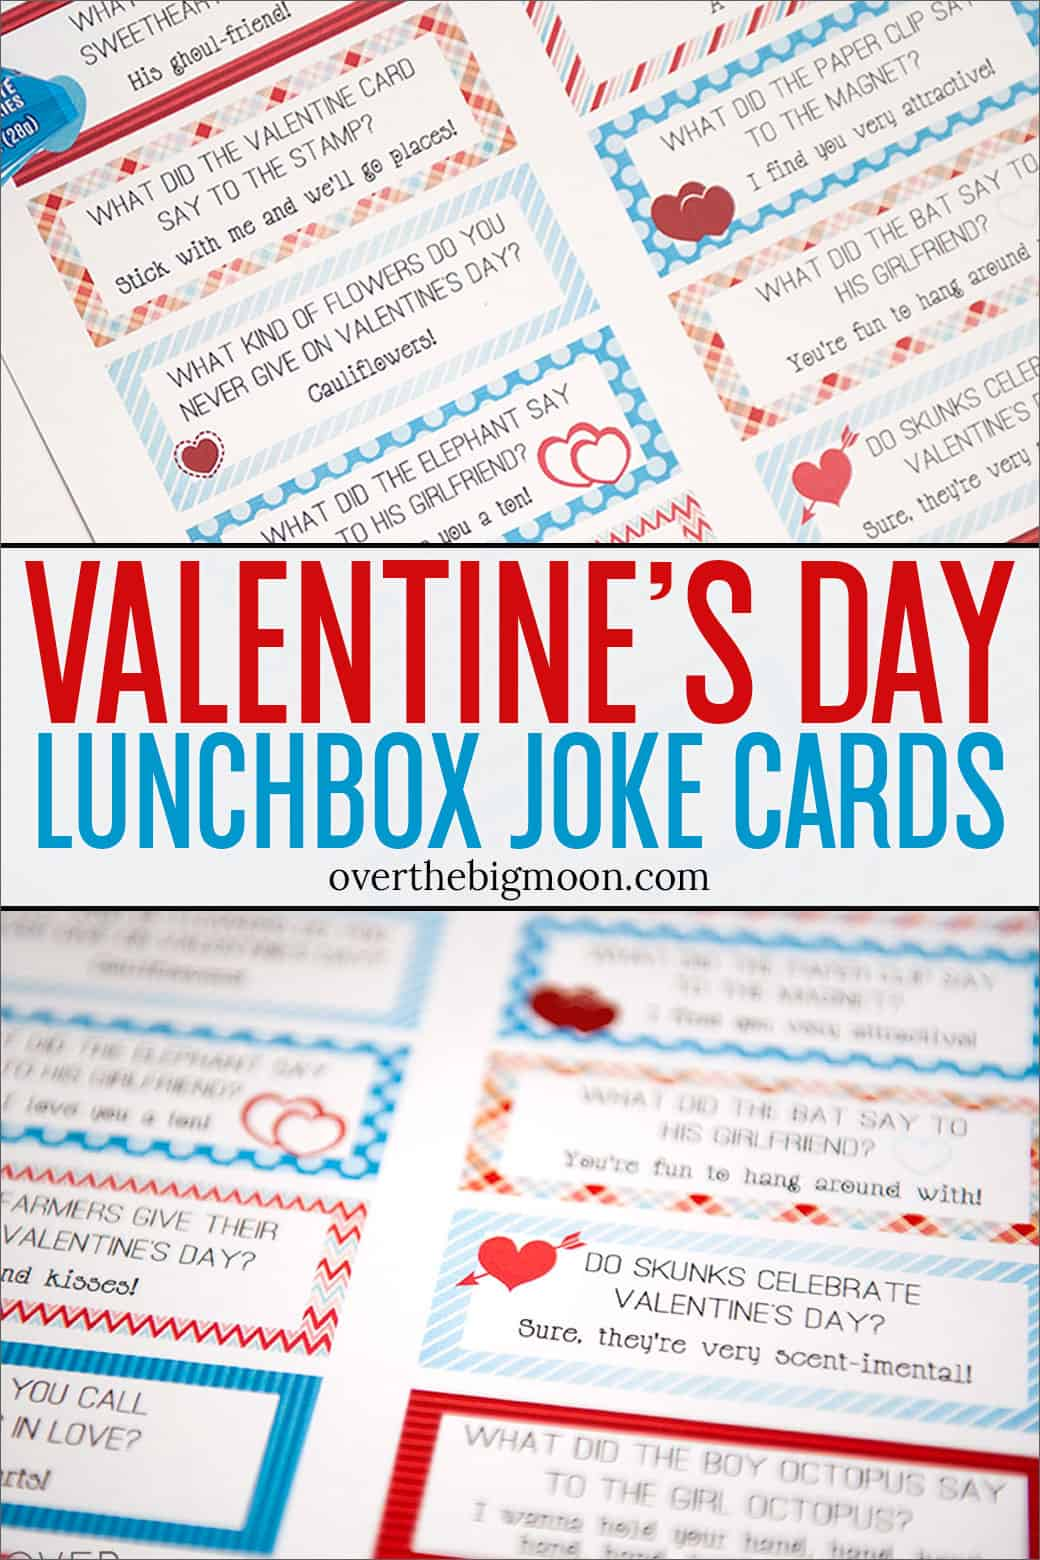 These Free Printable Valentines Lunch Box Joke Cards are a fun way to celebrate the holiday all month long! From overthebigmoon.com!